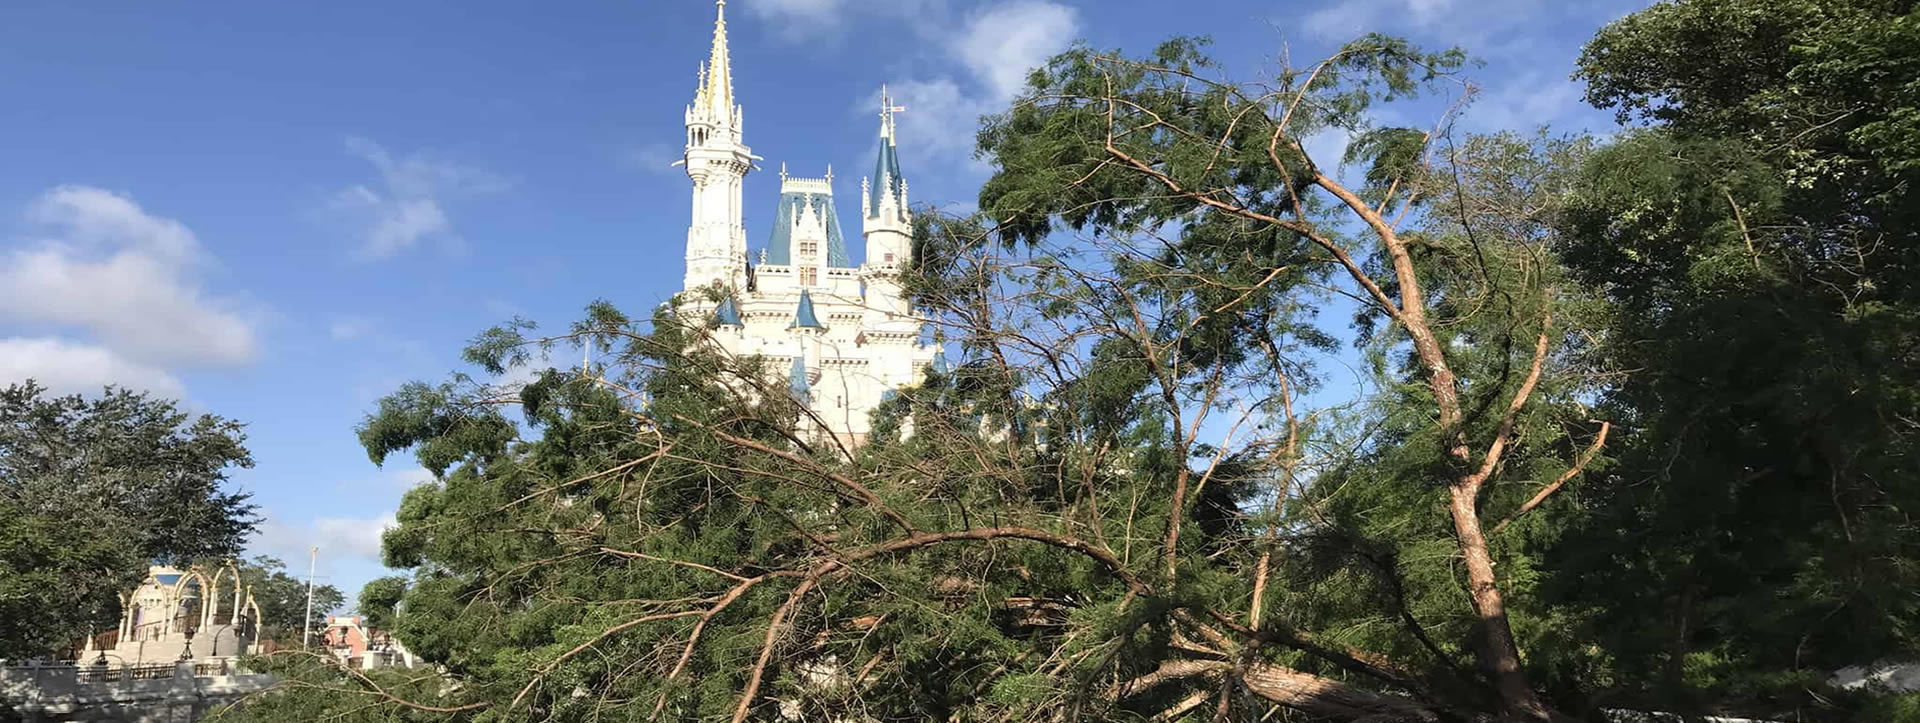 Disney Commercial Tree Removal Tree Trimming Tree Pruning